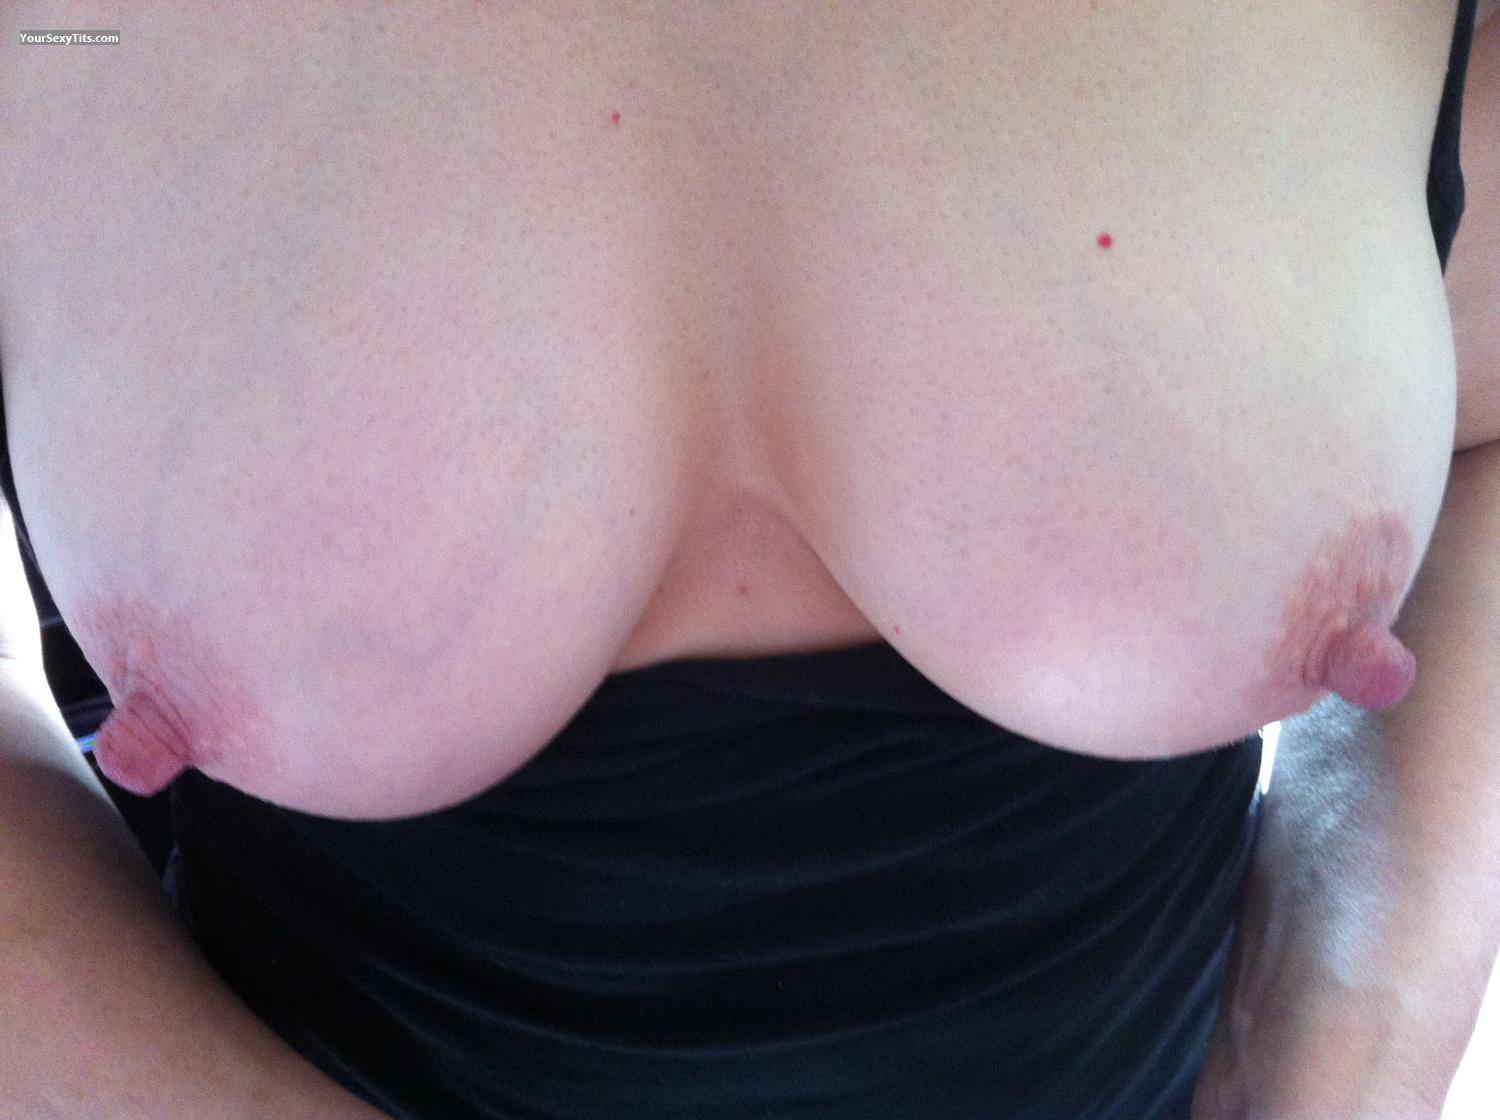 Tit Flash: Medium Tits By IPhone - Andy from United States